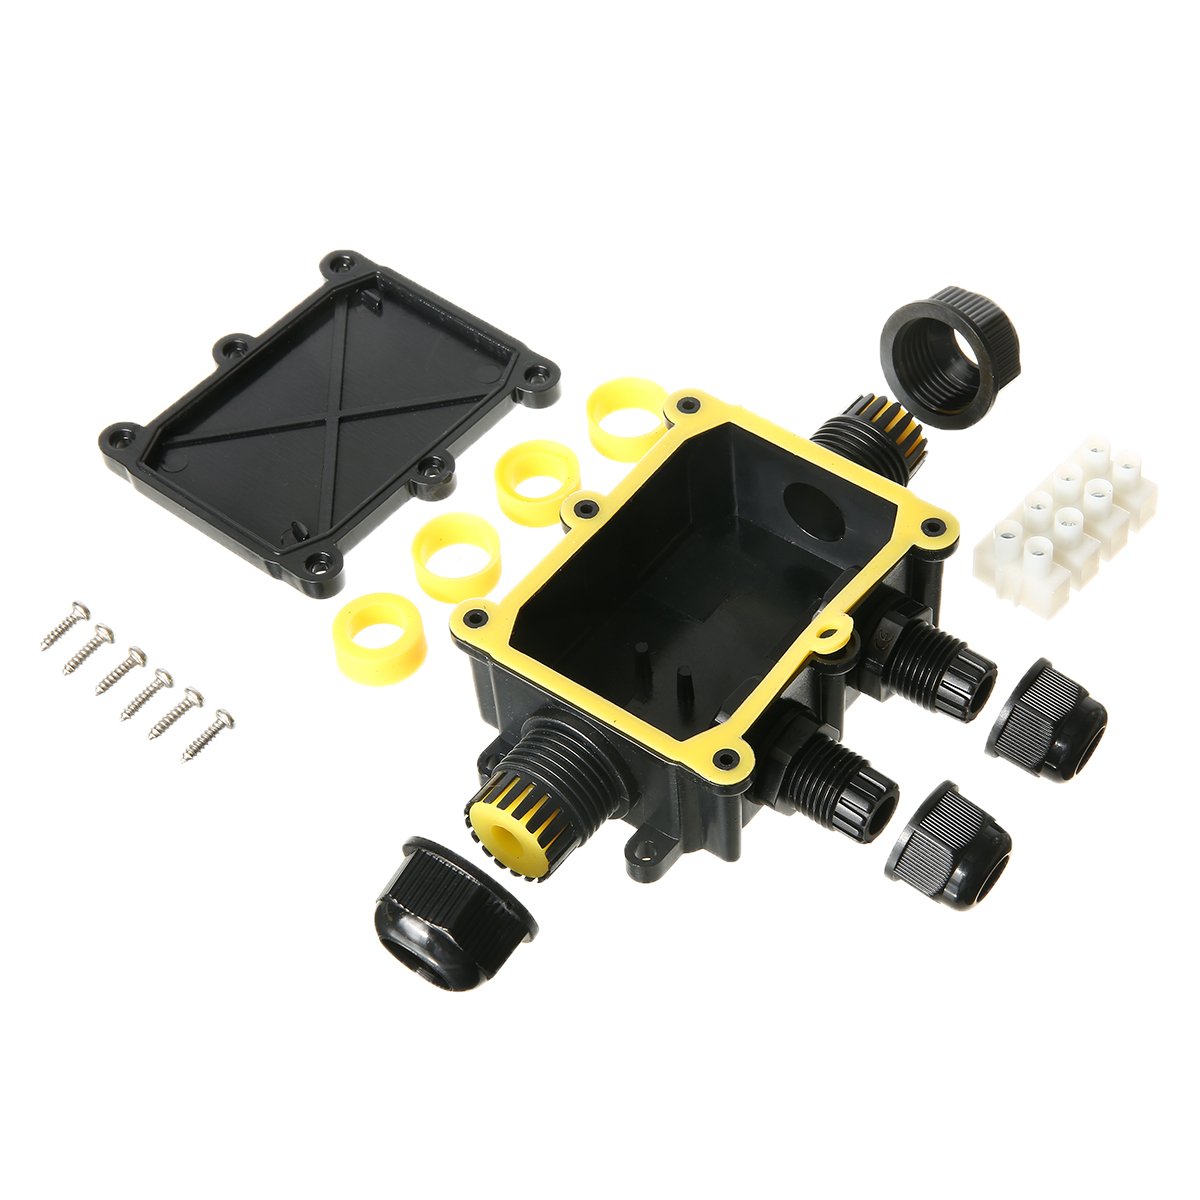 New 1pc Waterproof Junction Box Terminal 4 Way Underground Cable Protection Building Connectors IP68 For Street Lawn Flood Light